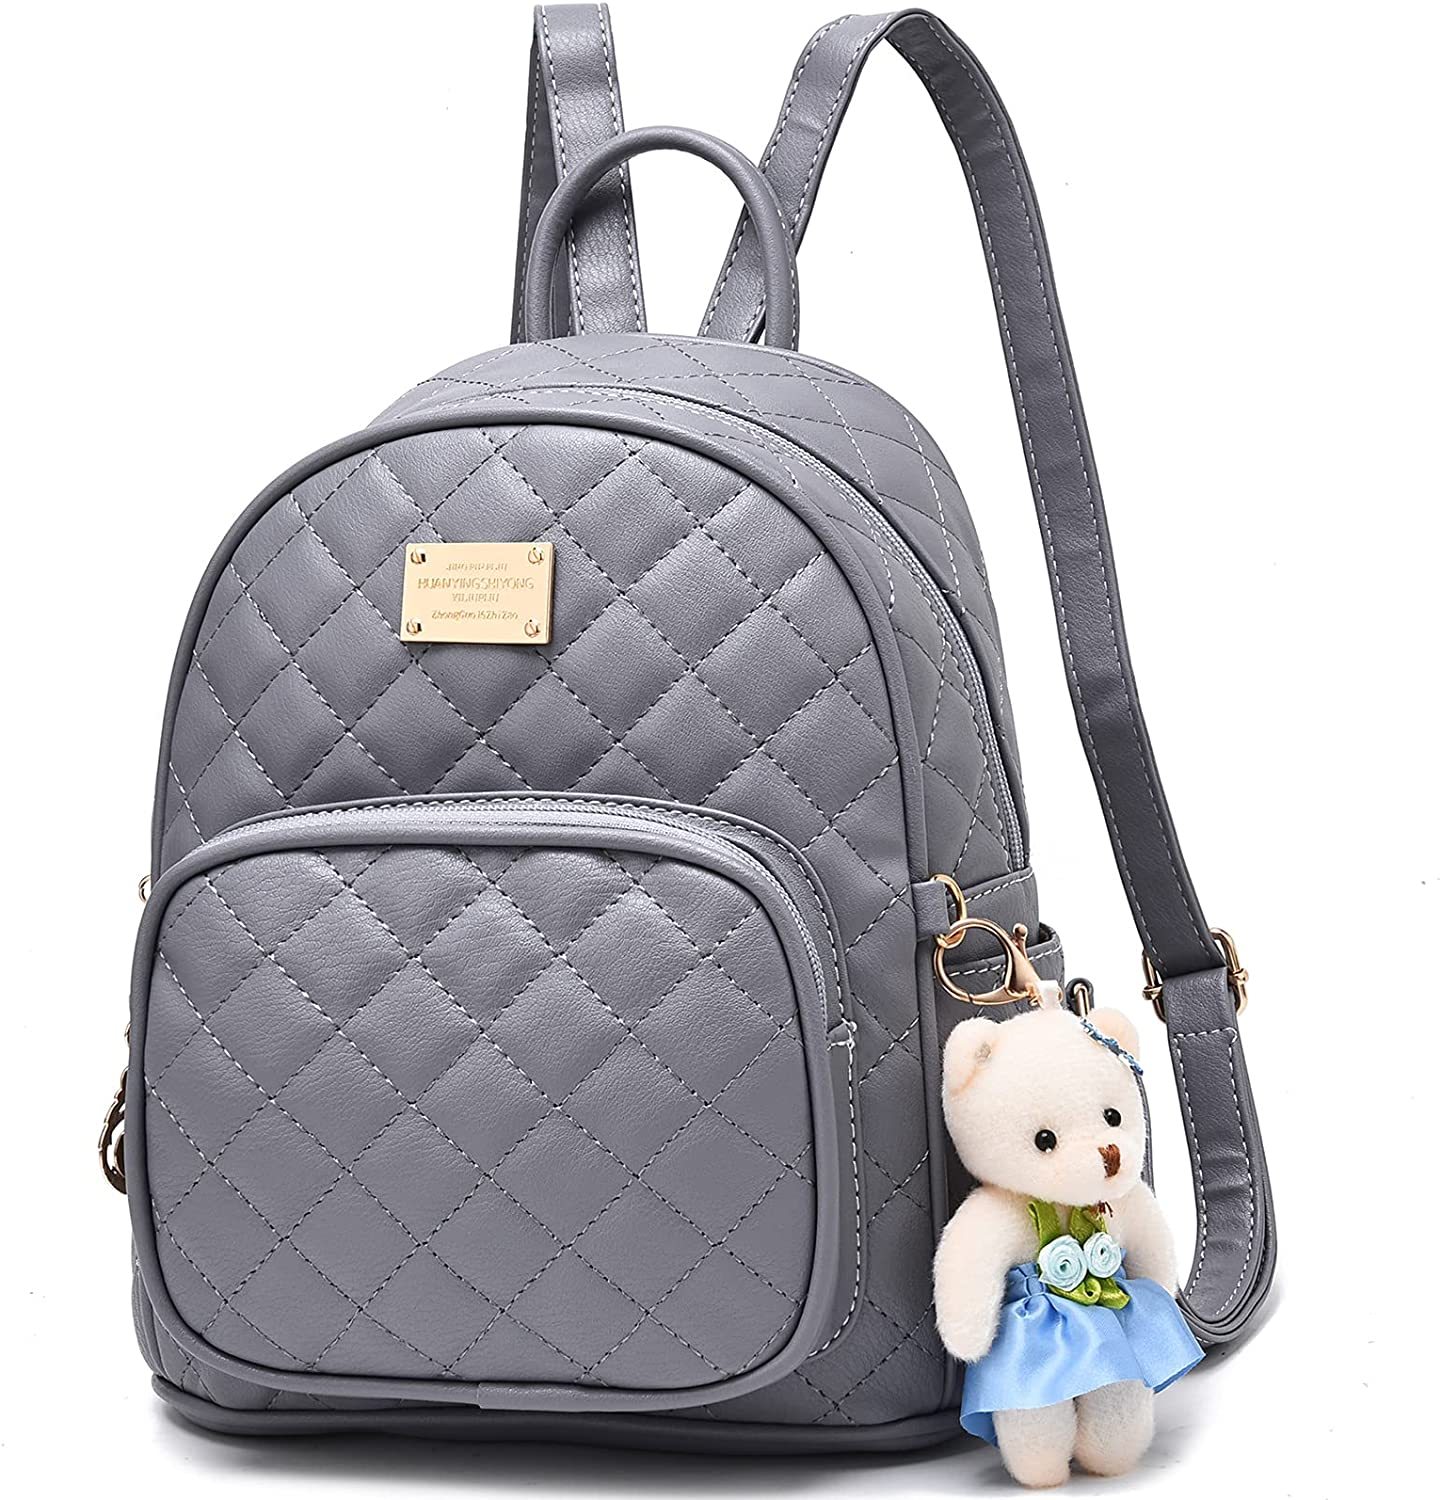 Cute Mini Leather Backpack Purse Satchel School Bags Casual Travel Daypacks for Womens